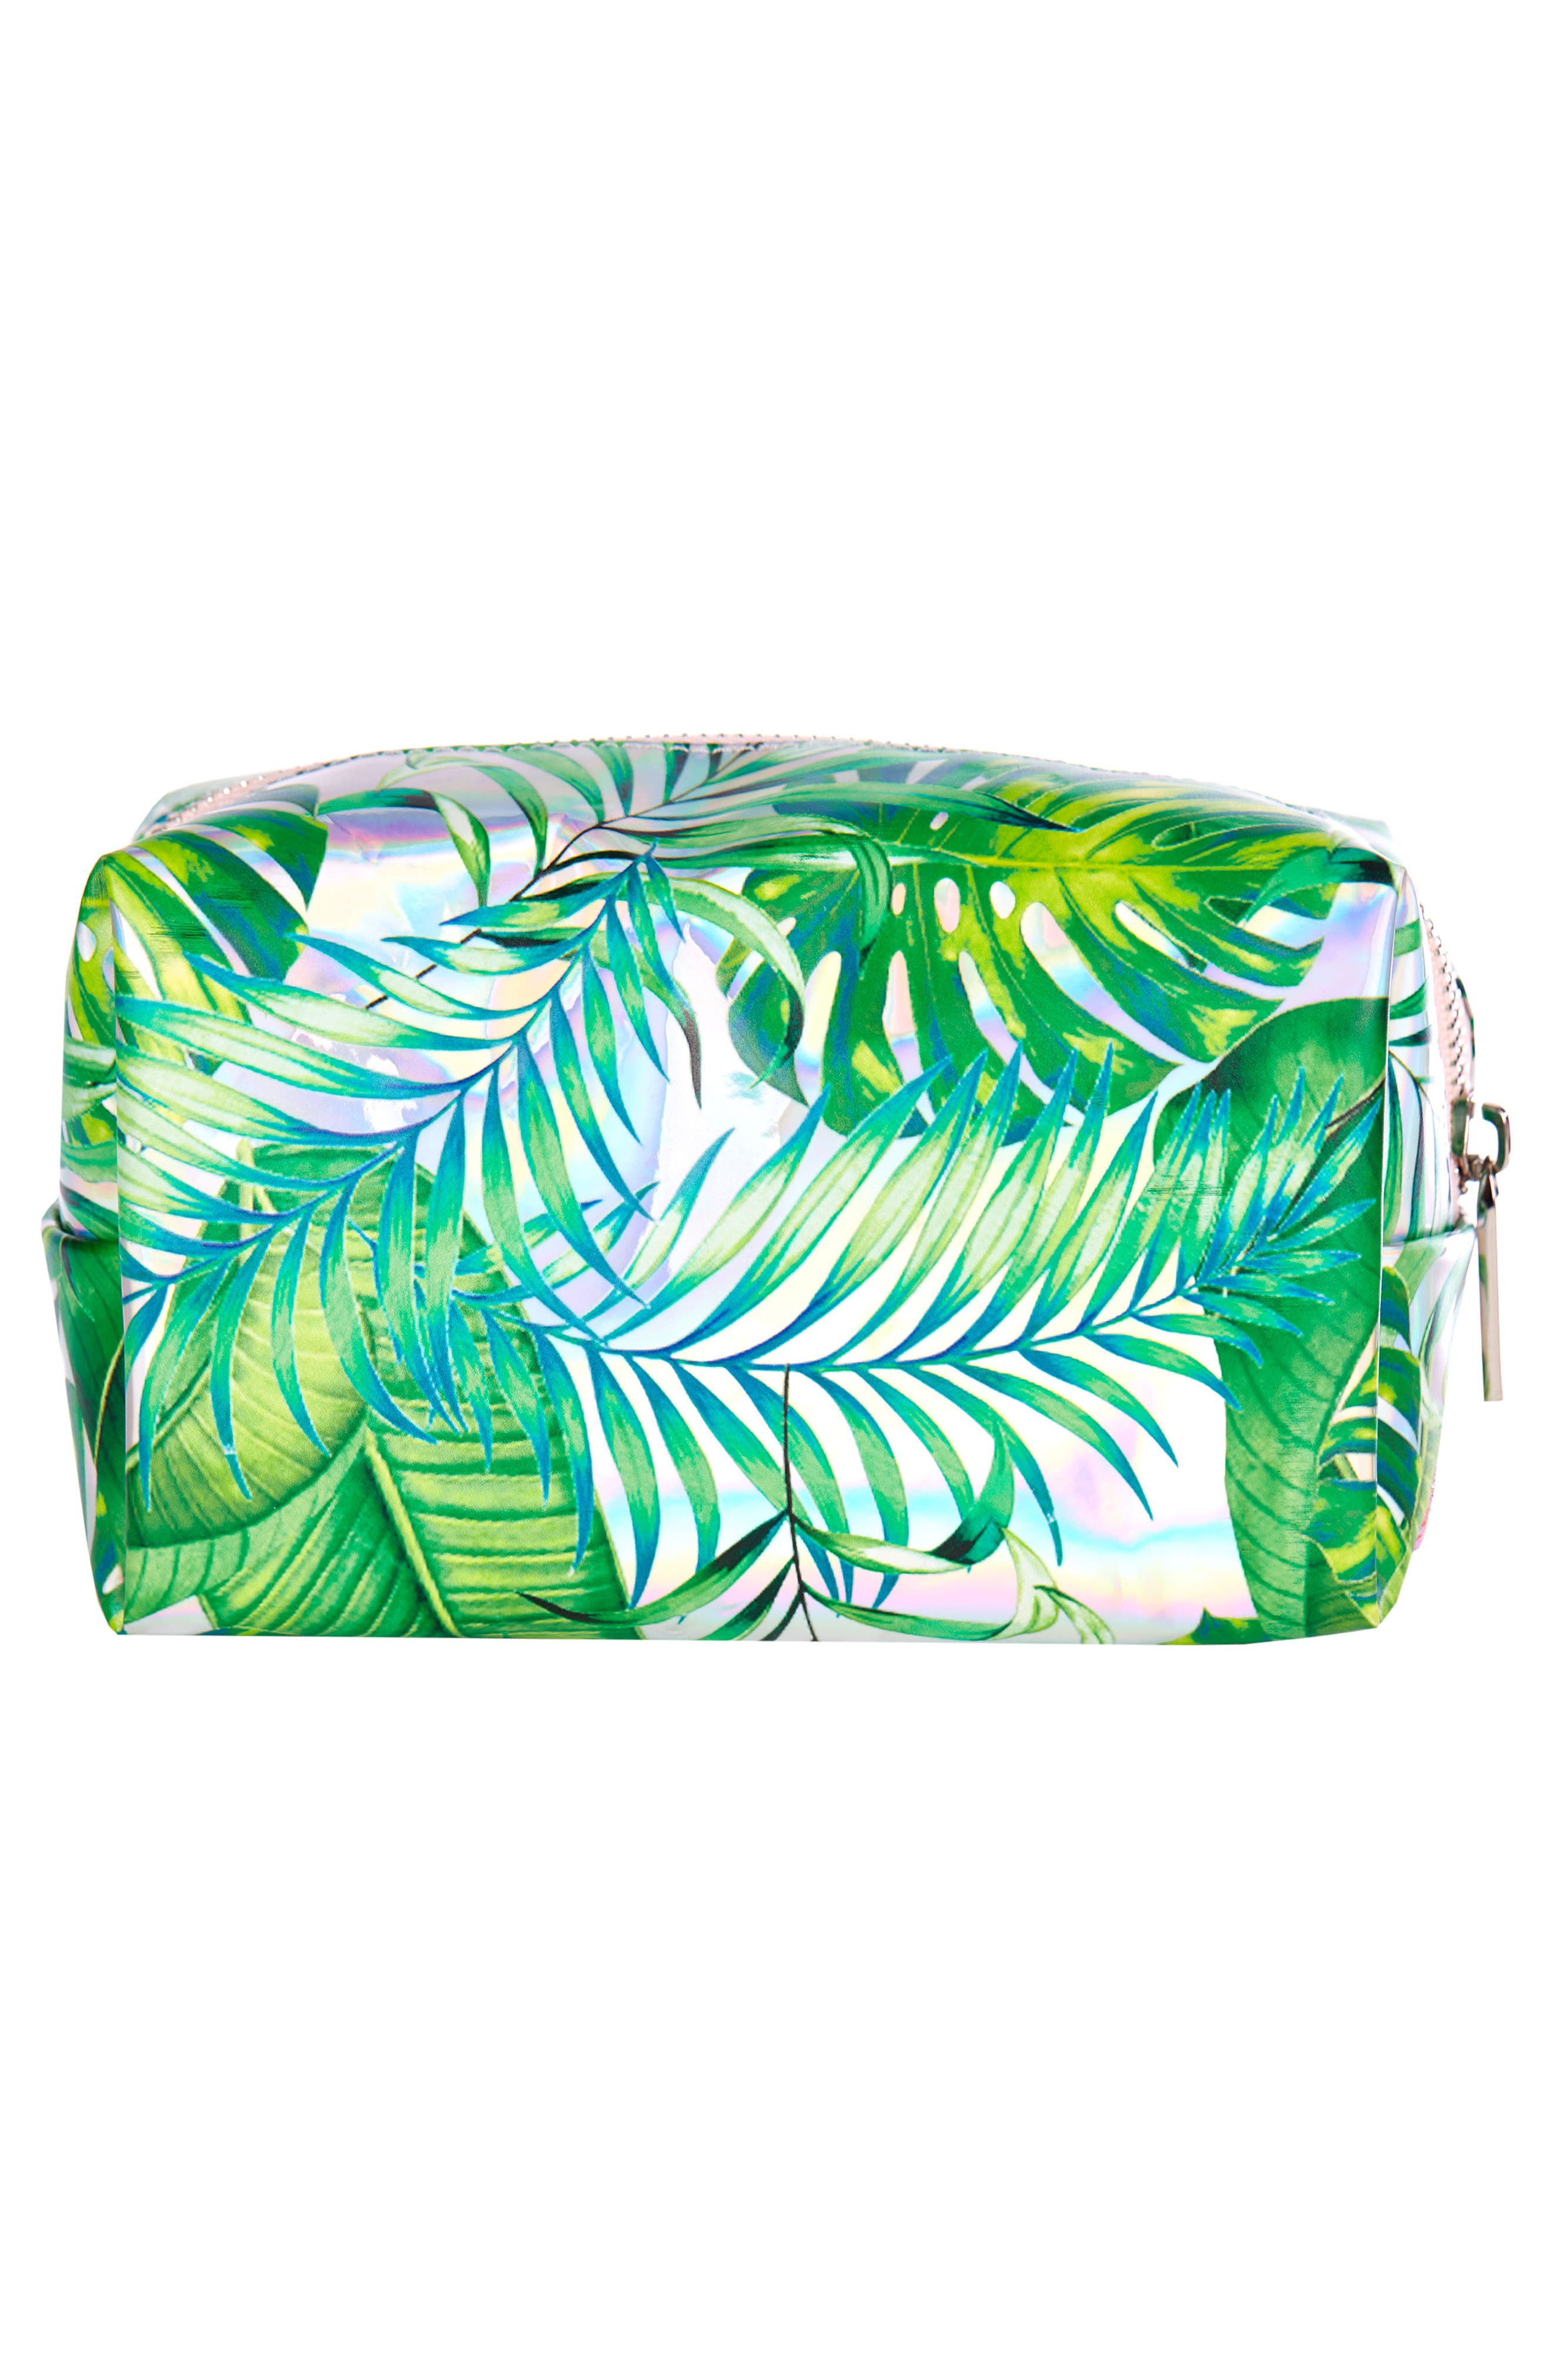 Skinny Dip Dominica Cosmetics Case,                             Alternate thumbnail 2, color,                             No Color